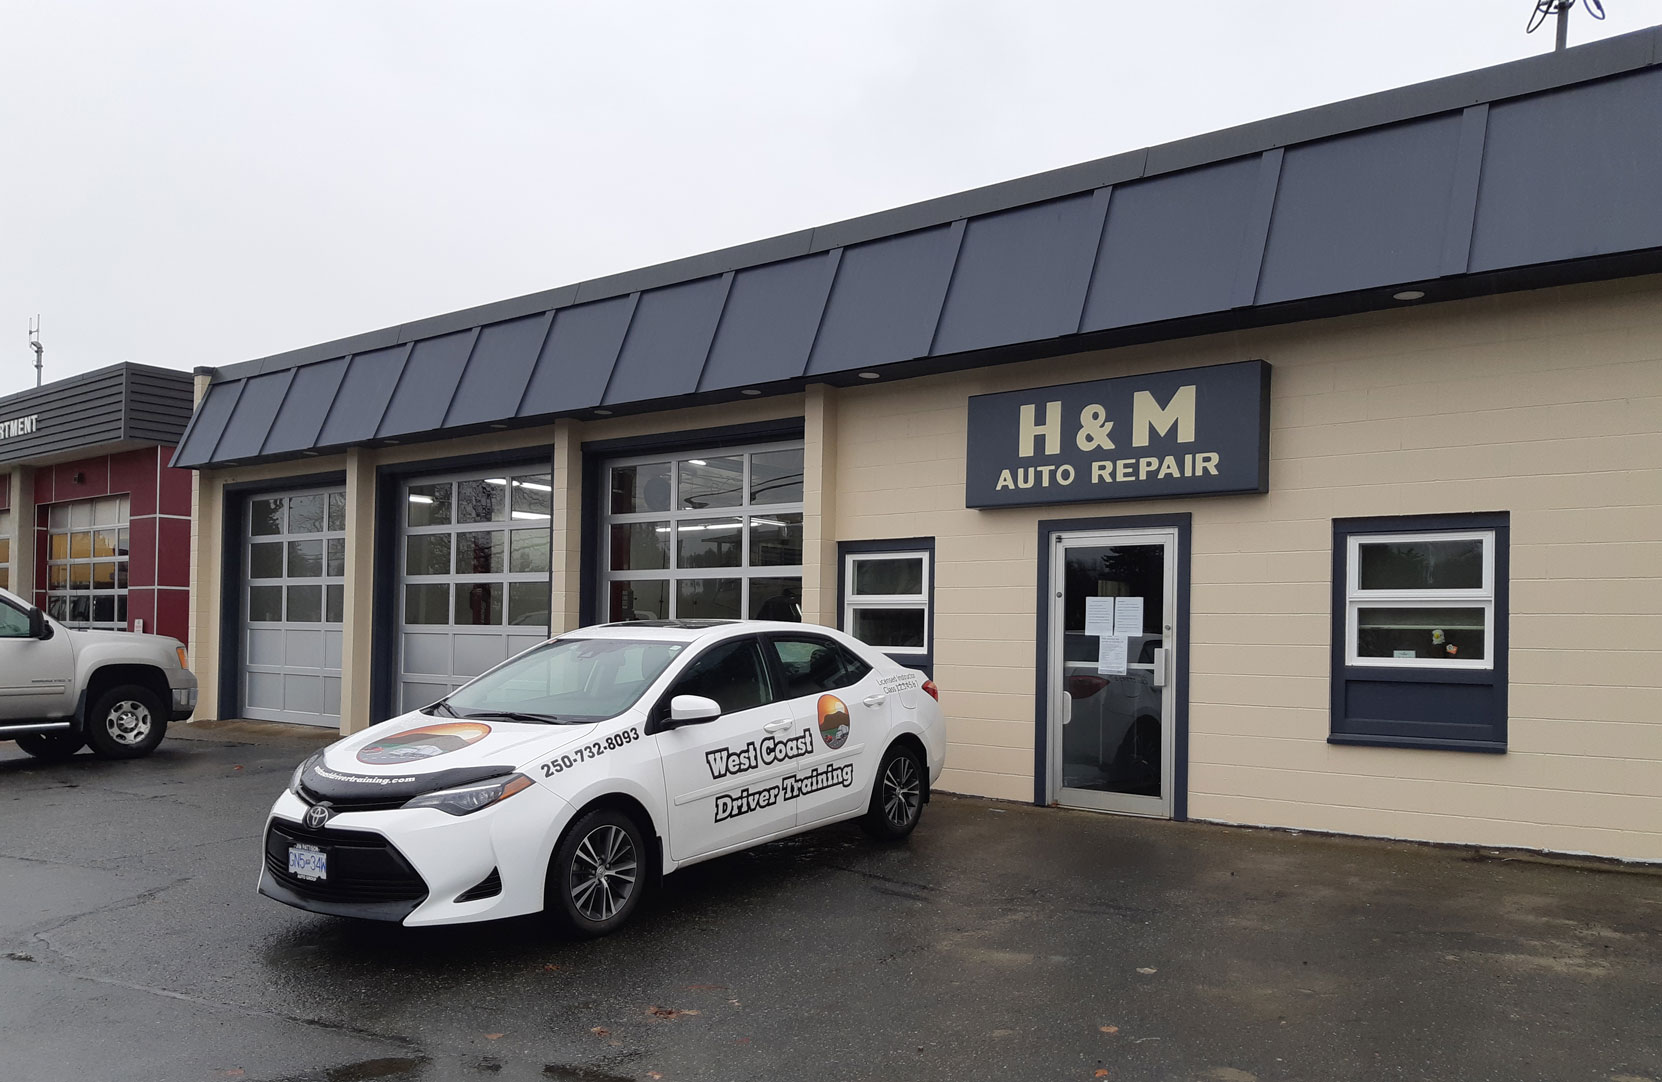 Our 2018 Toyota Corolla outside H & M Auto Repair, Duncan Street in downtown Duncan. (photo: West Coast Driver Training)